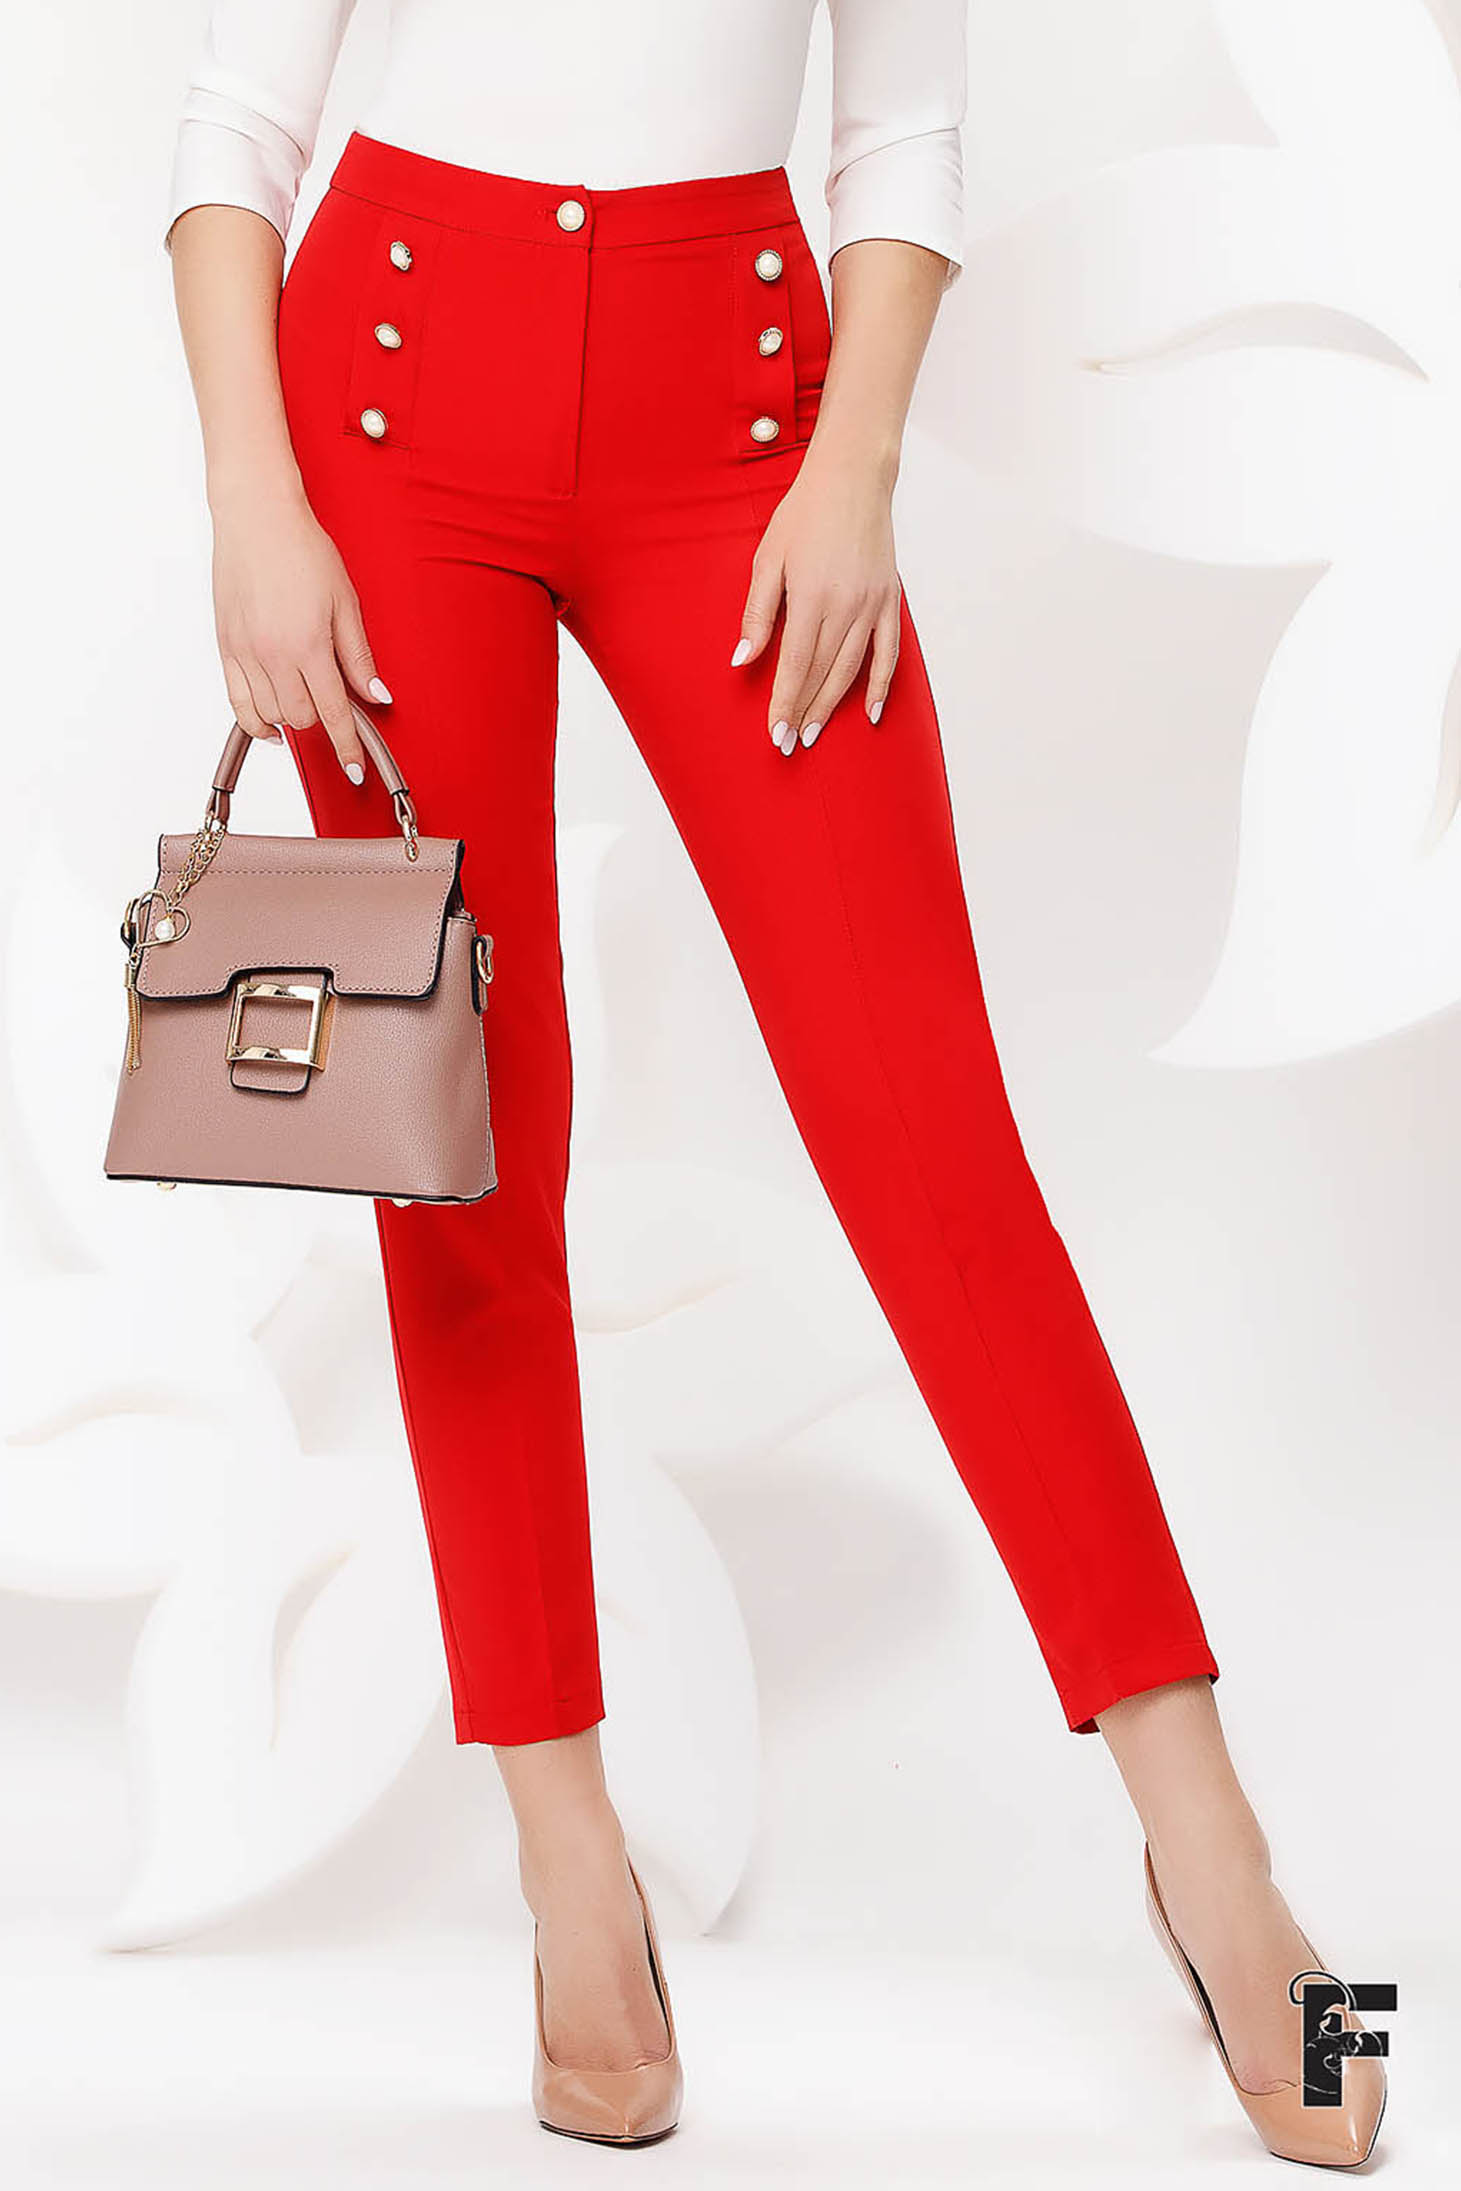 Trousers red office conical high waisted slightly elastic fabric with button accessories